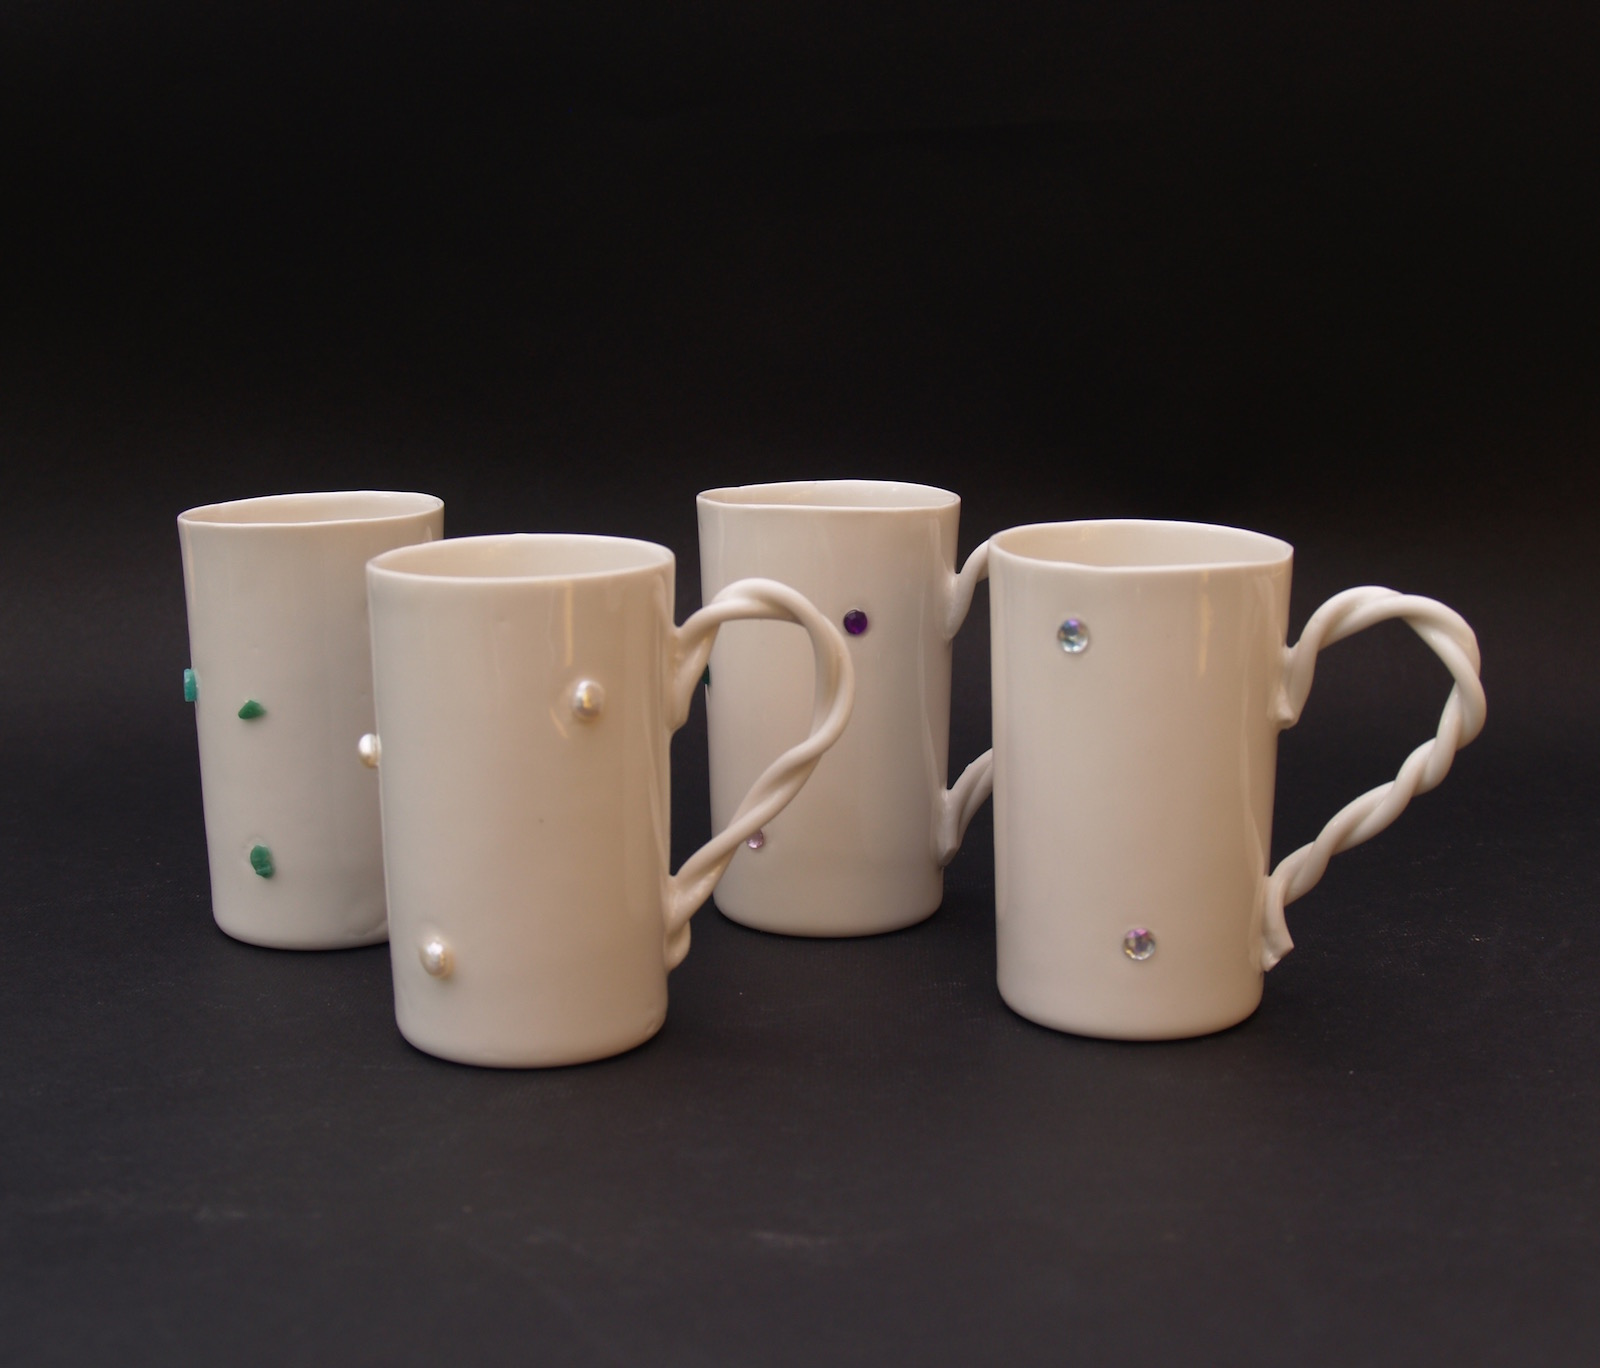 Small bejeweled porcelain mugs with twirled handles